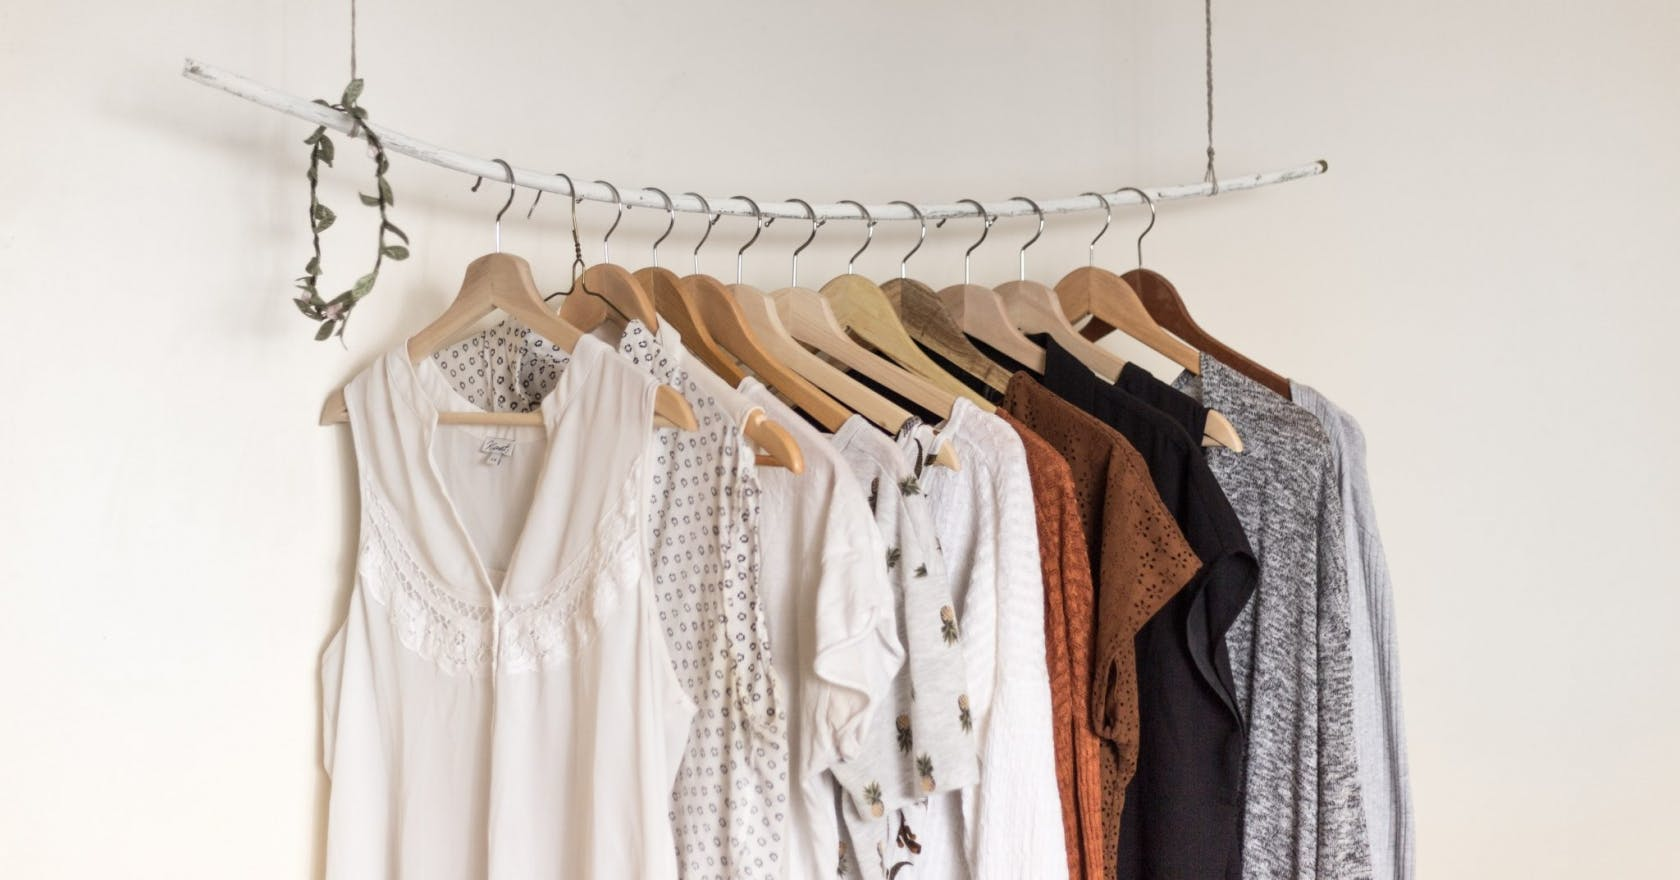 7 step guide to organising your wardrobe